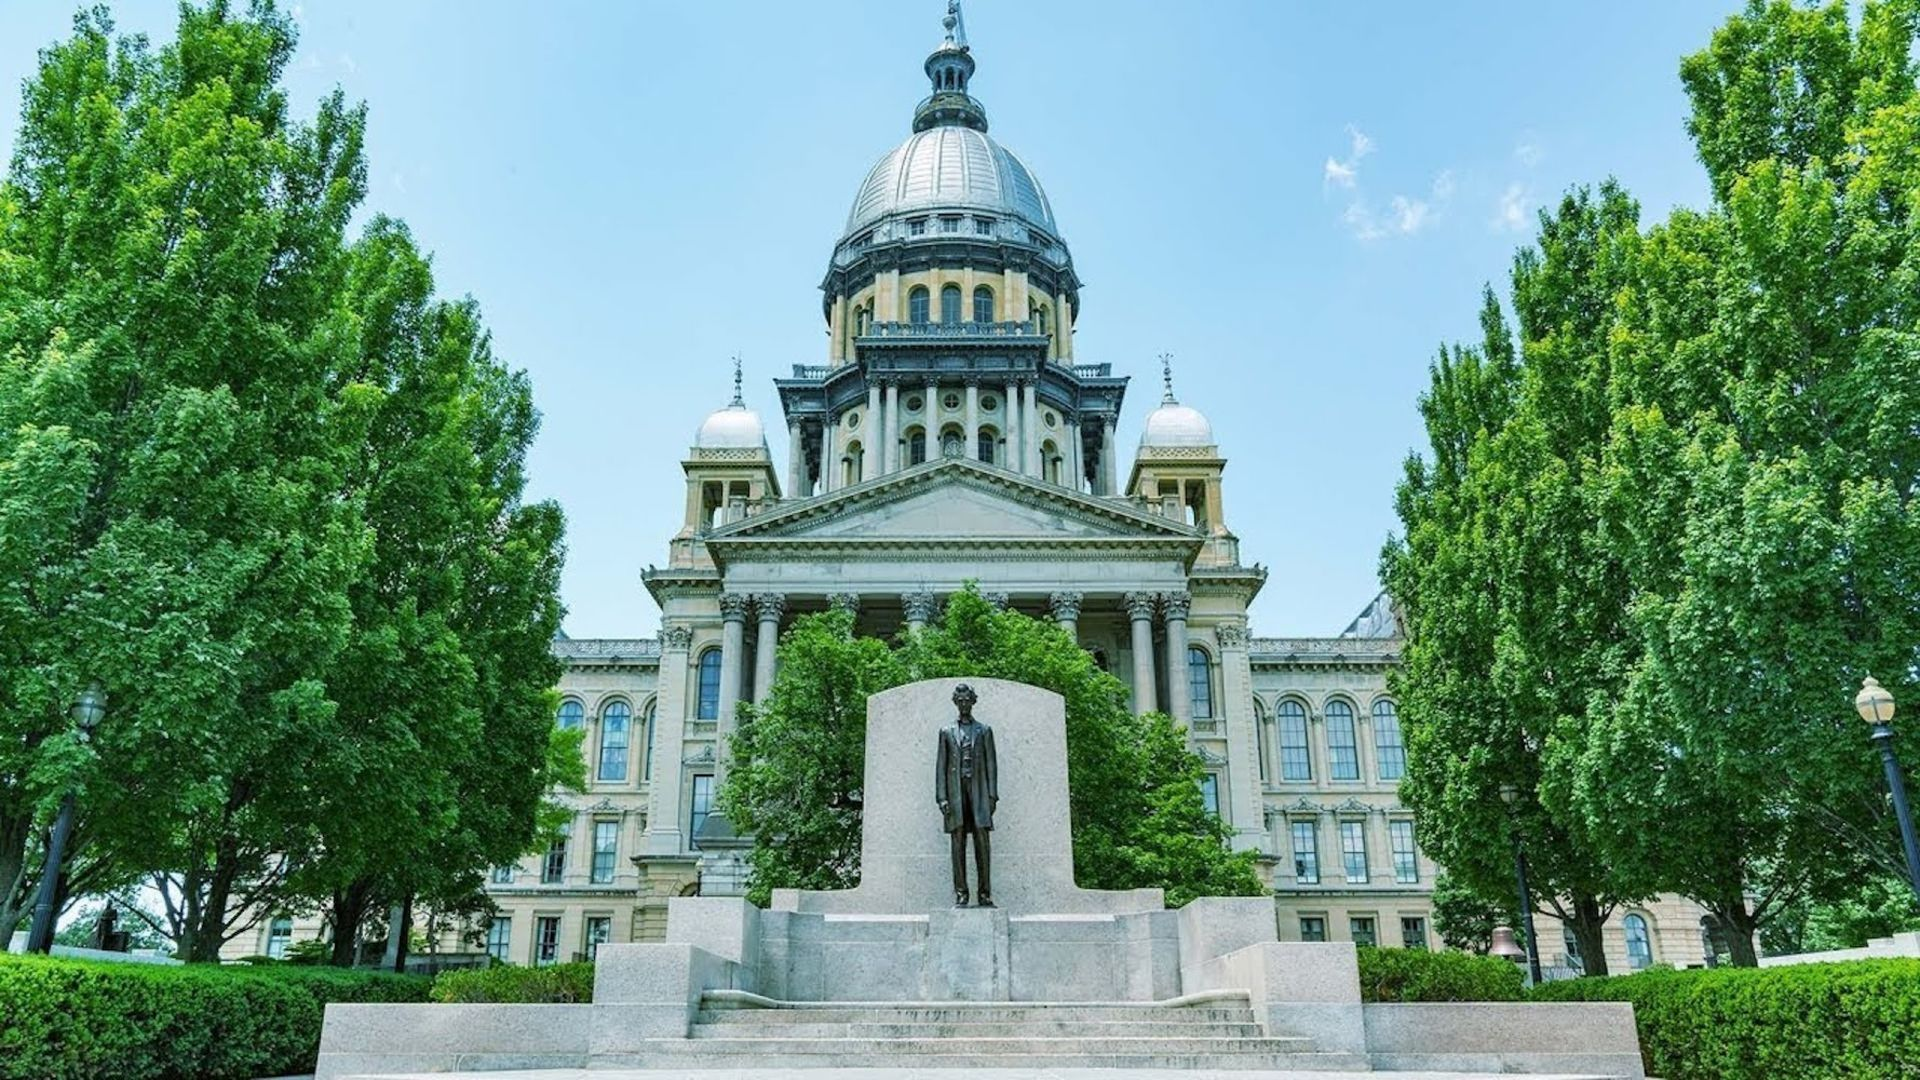 Own a Lot in Illinois, the Land of Lincoln!